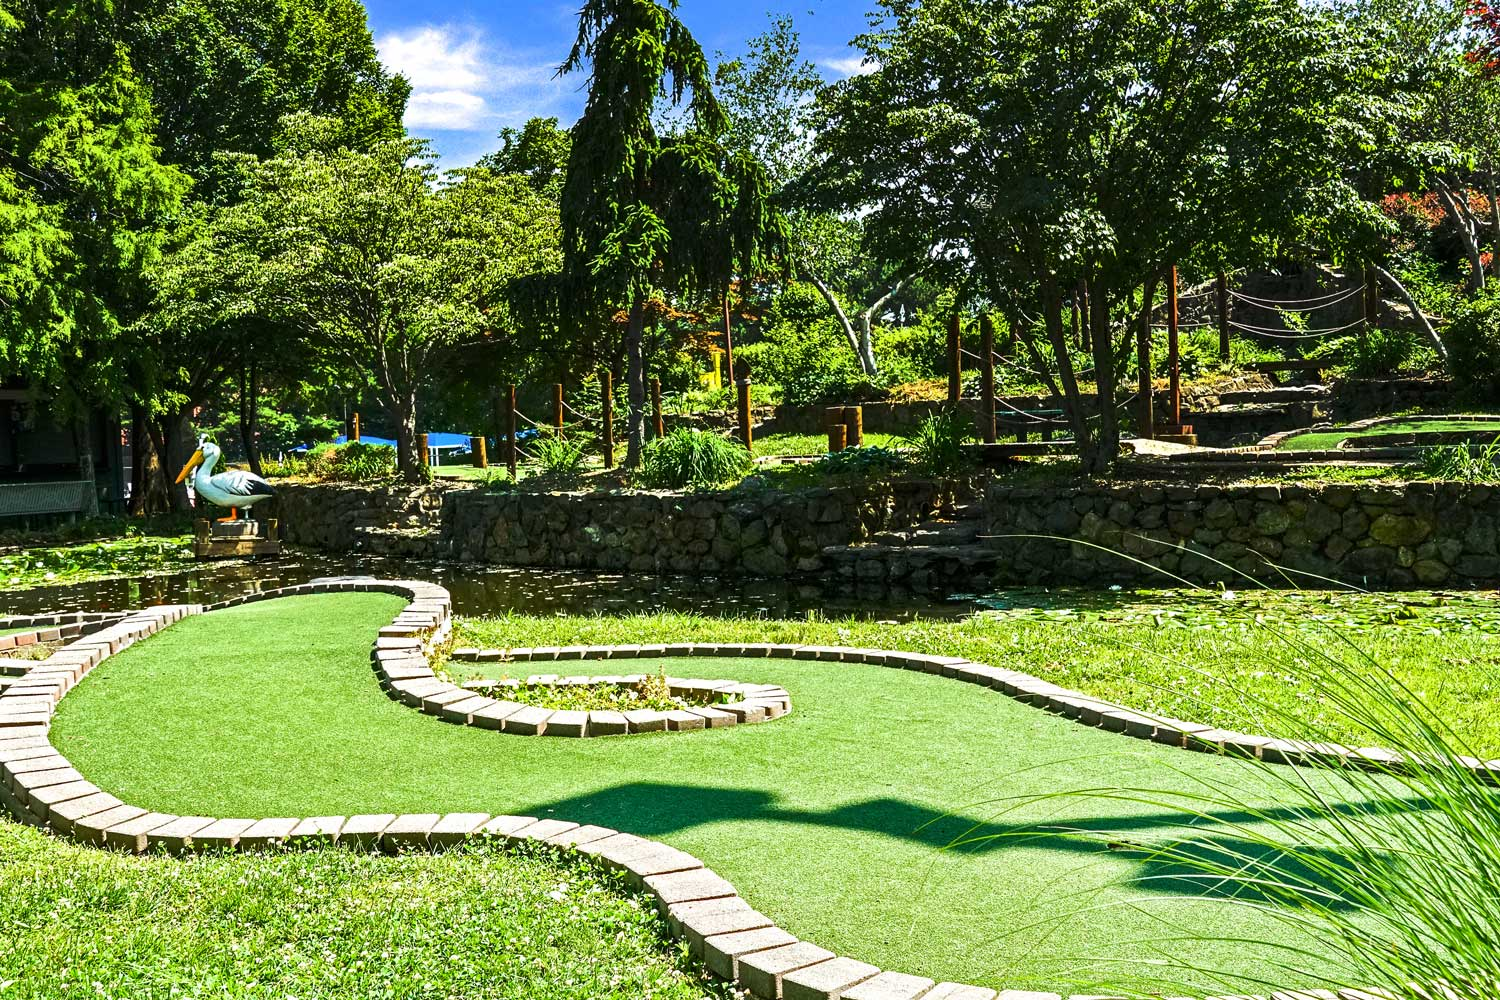 Miniature golf 10 minutes from Barcroft View Apartments in Falls Church, VA